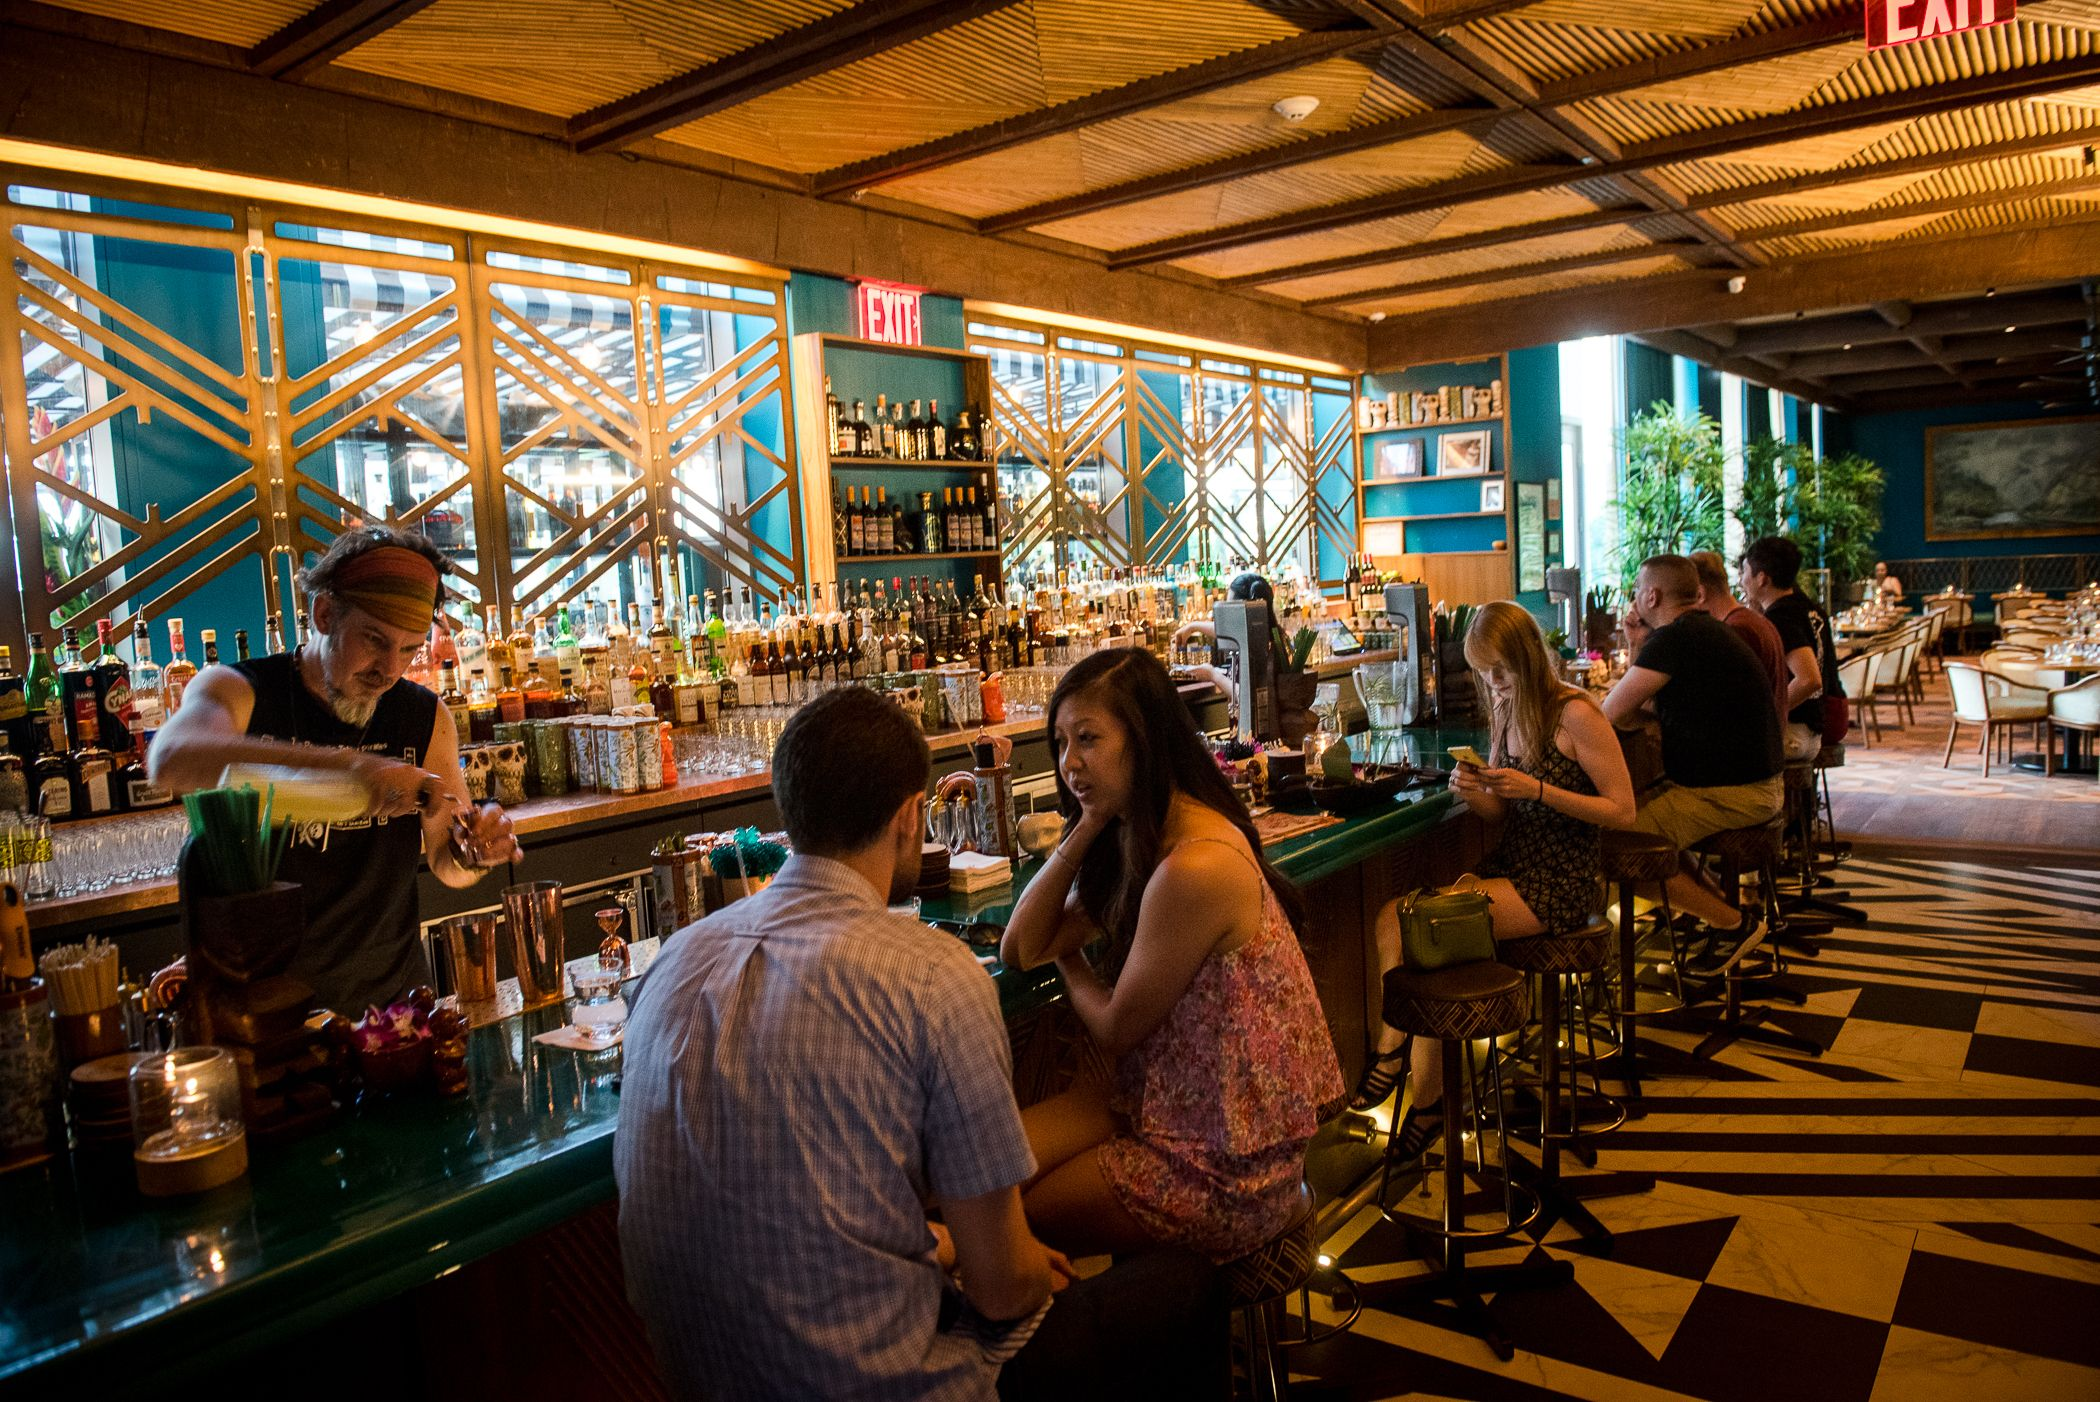 The Best Bars In Hell S Kitchen Lifestyles Cool Bars Bar